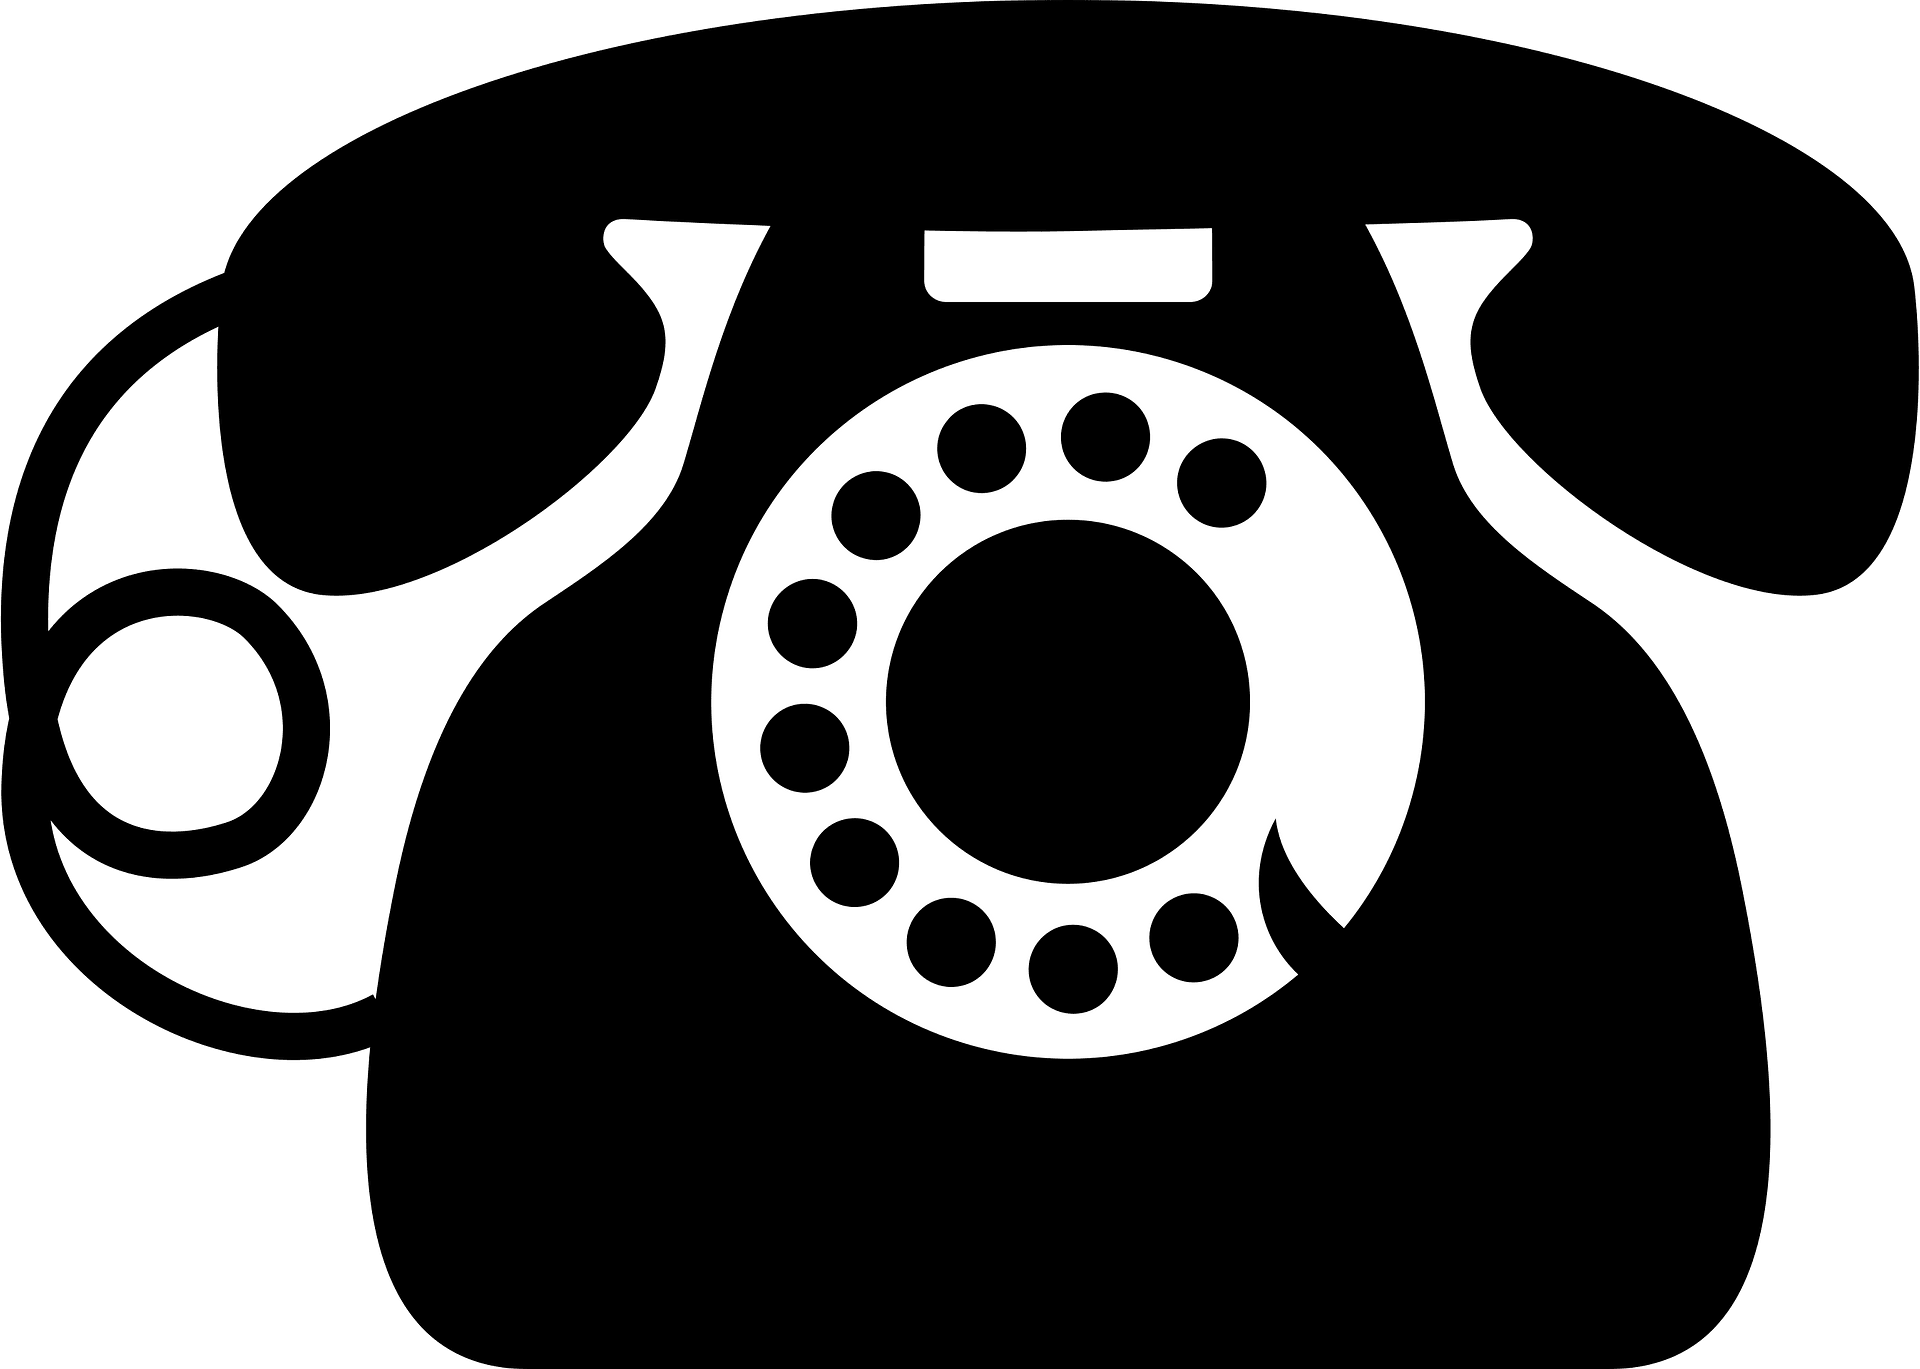 Rotary Dial Telephone Black And White Clipart Free Download Transparent Png Creazilla